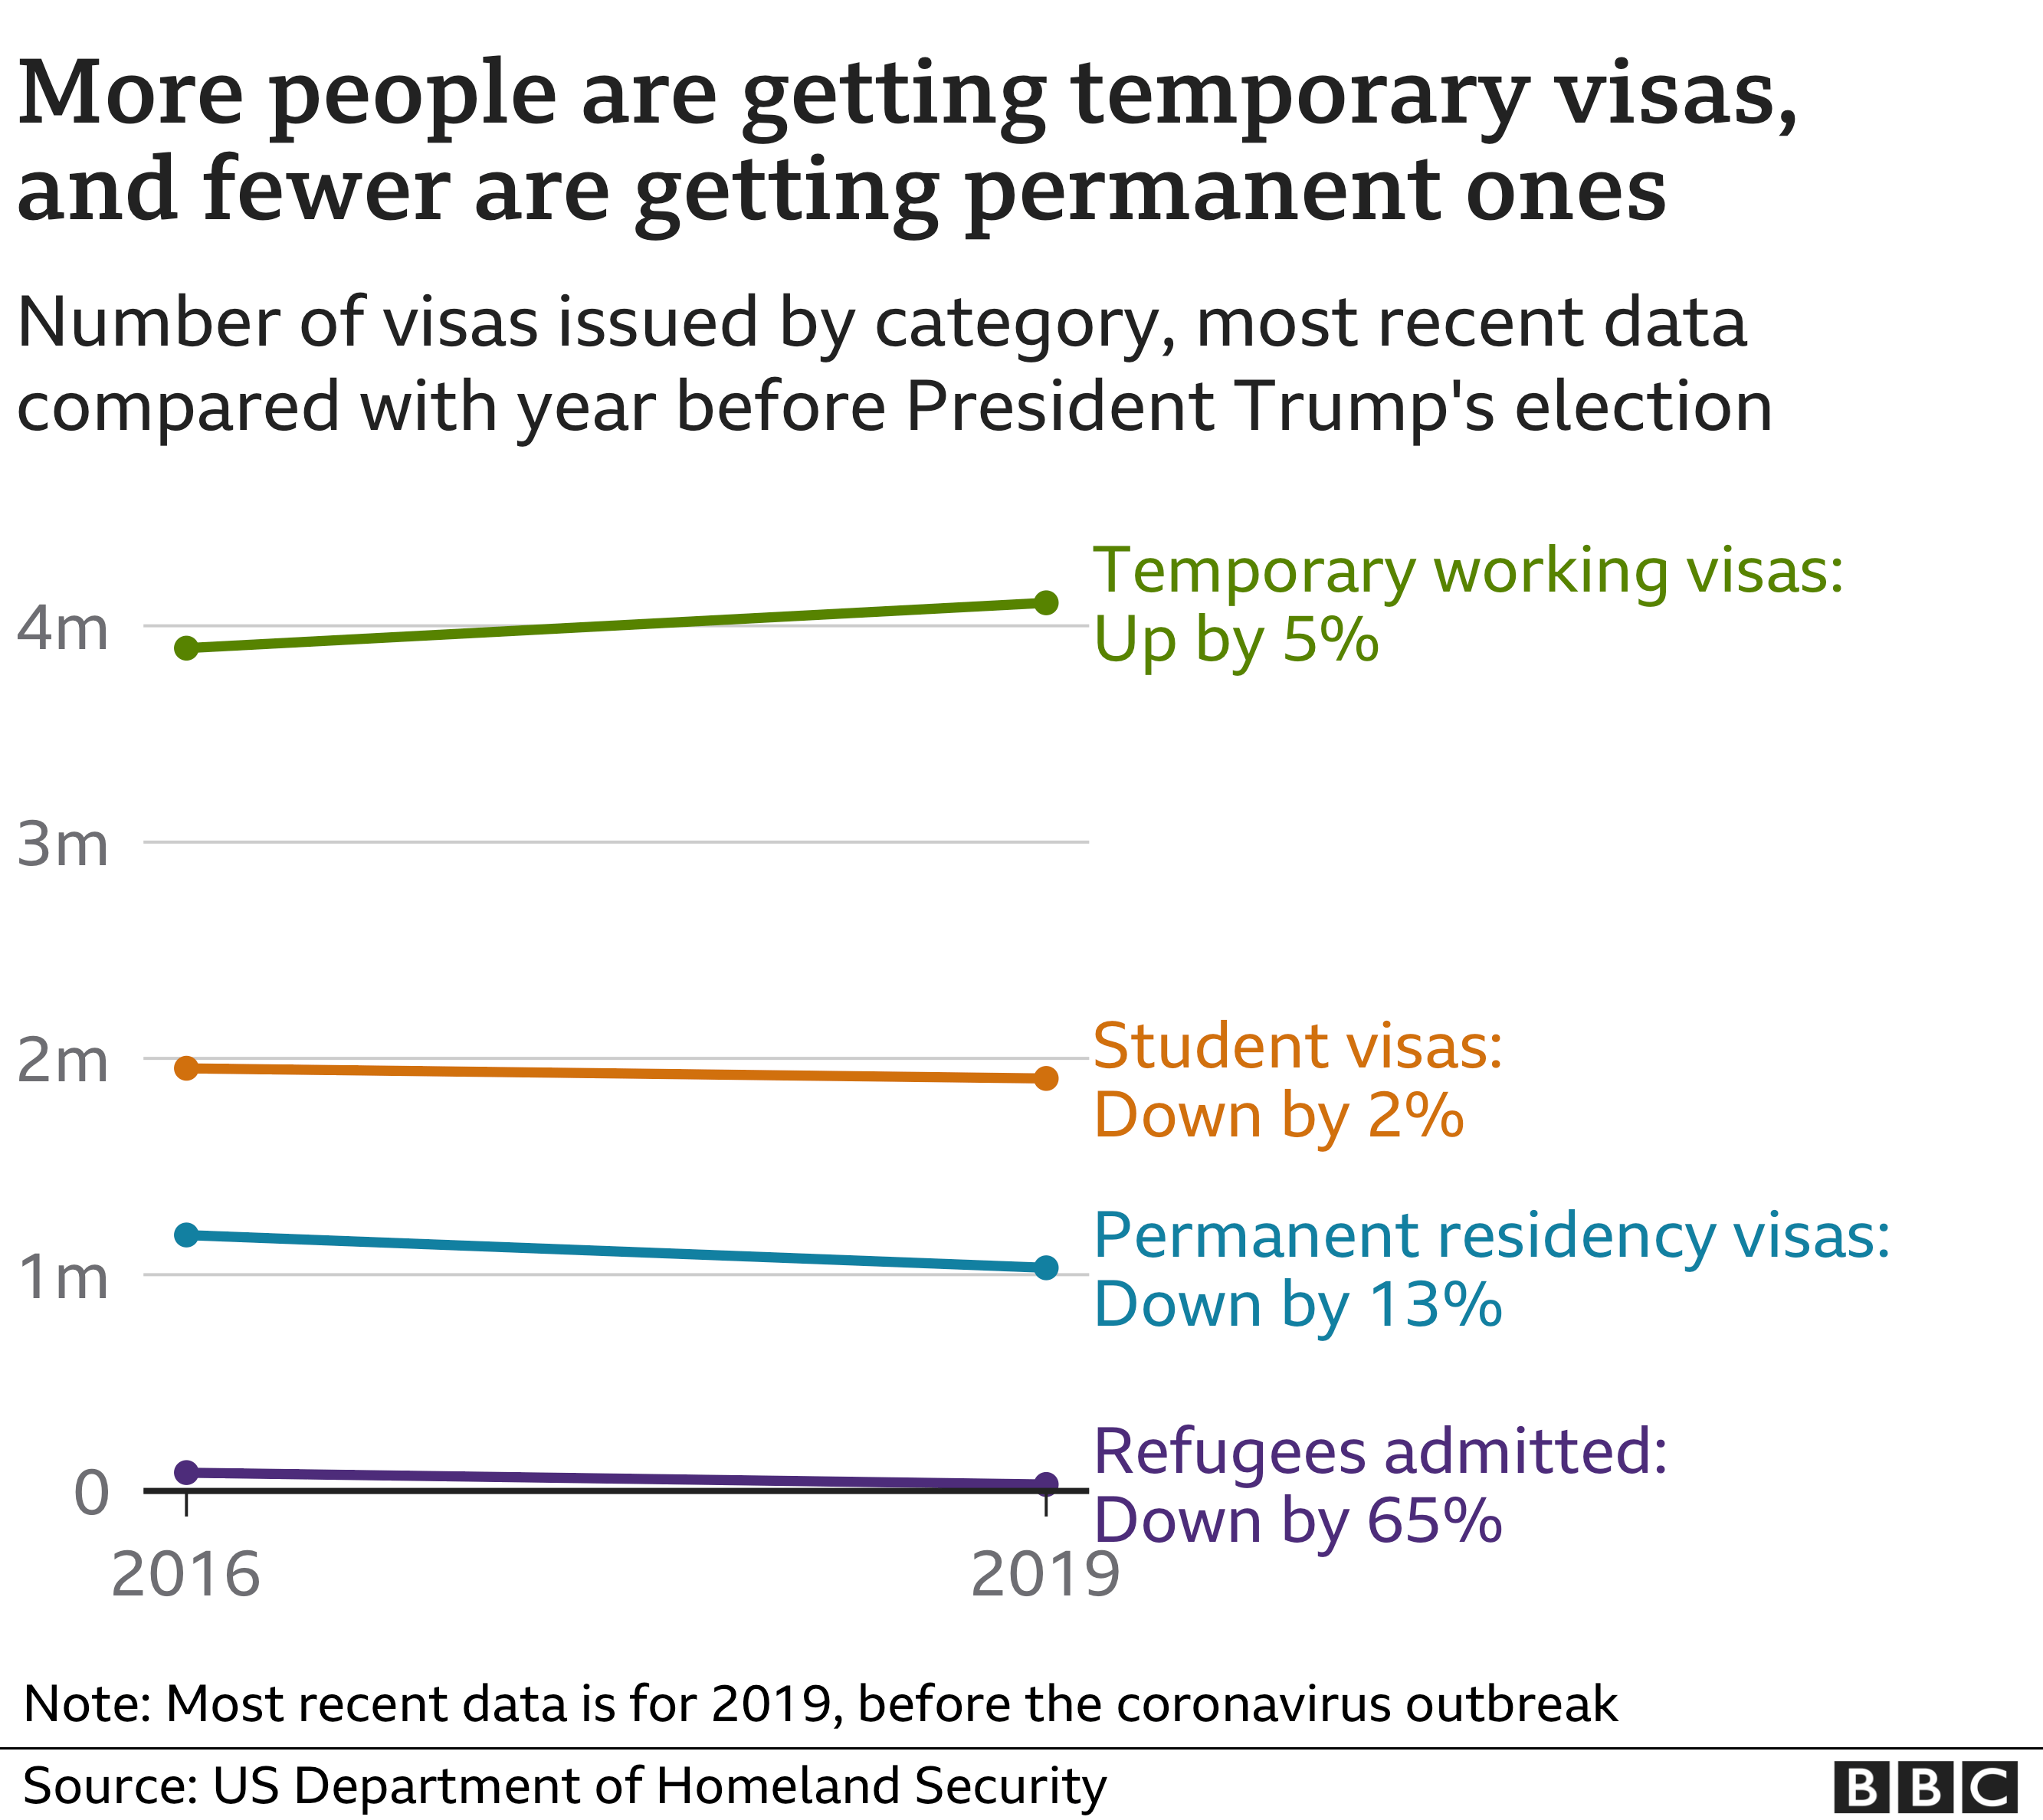 More people are getting temporary visas, and fewer are getting permanent ones